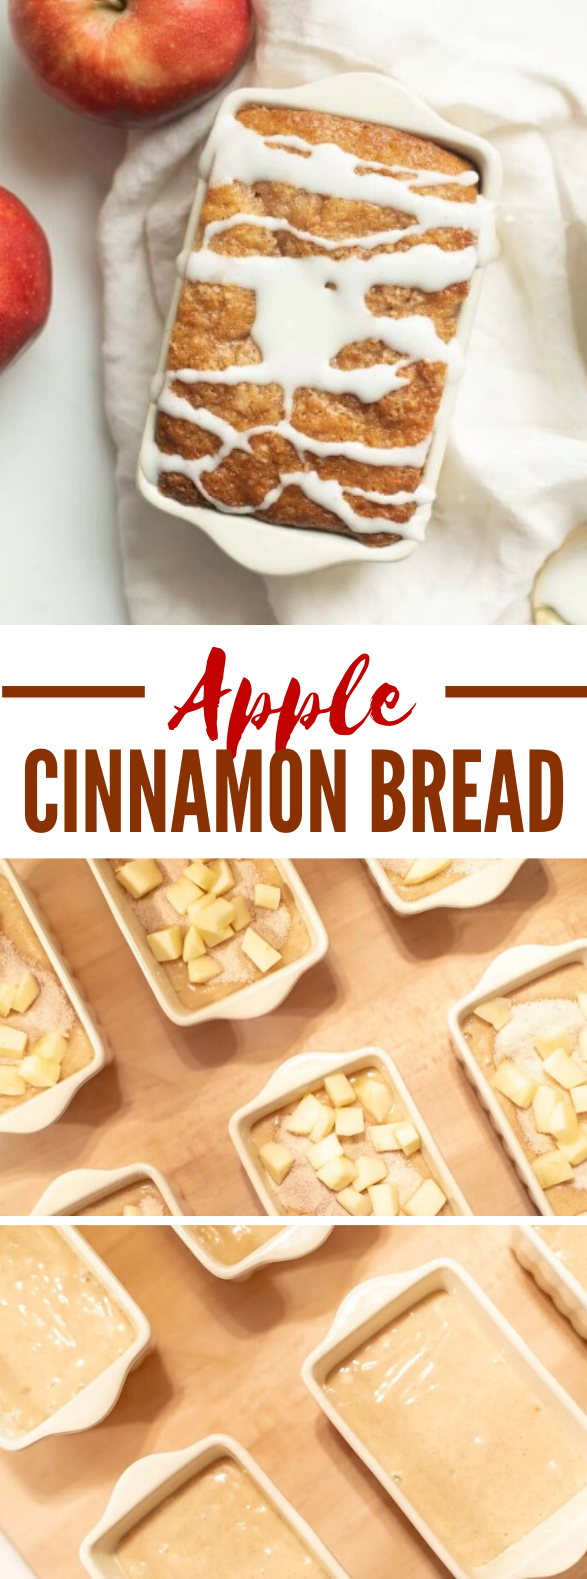 Apple Cinnamon Bread Recipe #desserts #breakfast